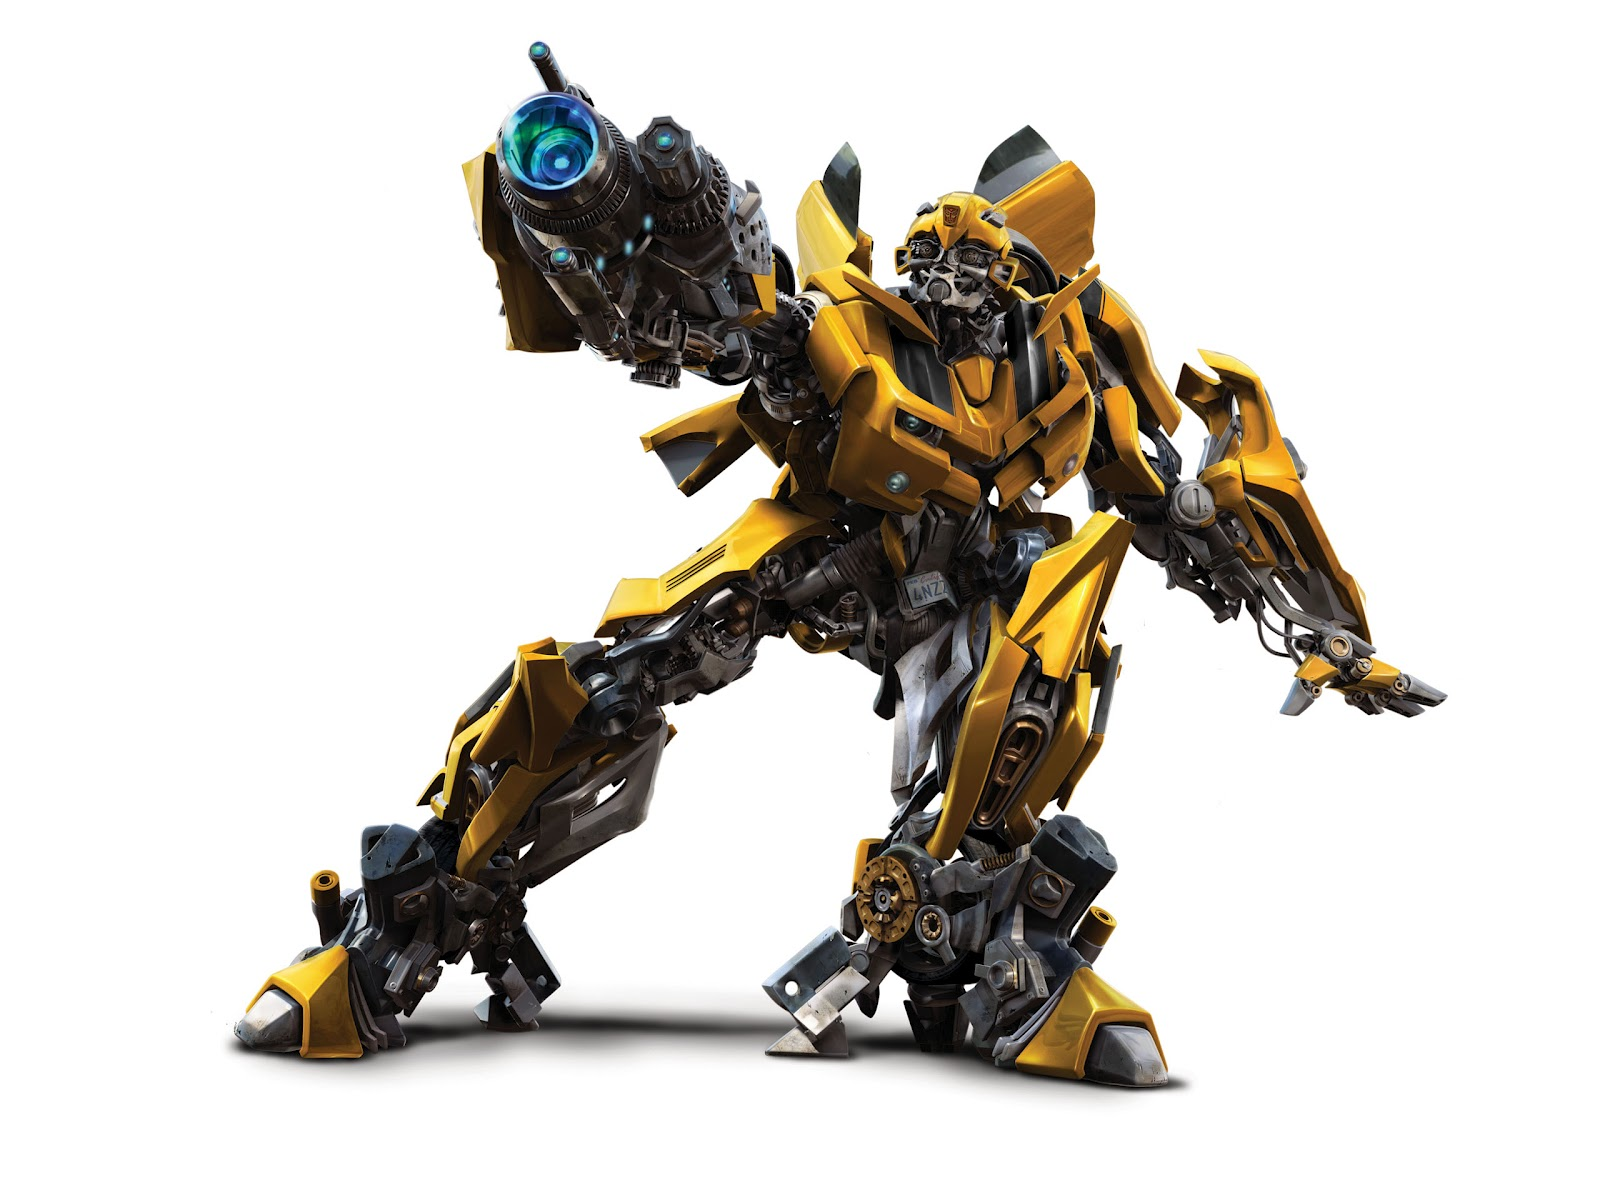 transformers 3 bumblebee wallpapers - HD Transformers Wallpapers & Backgrounds For Free